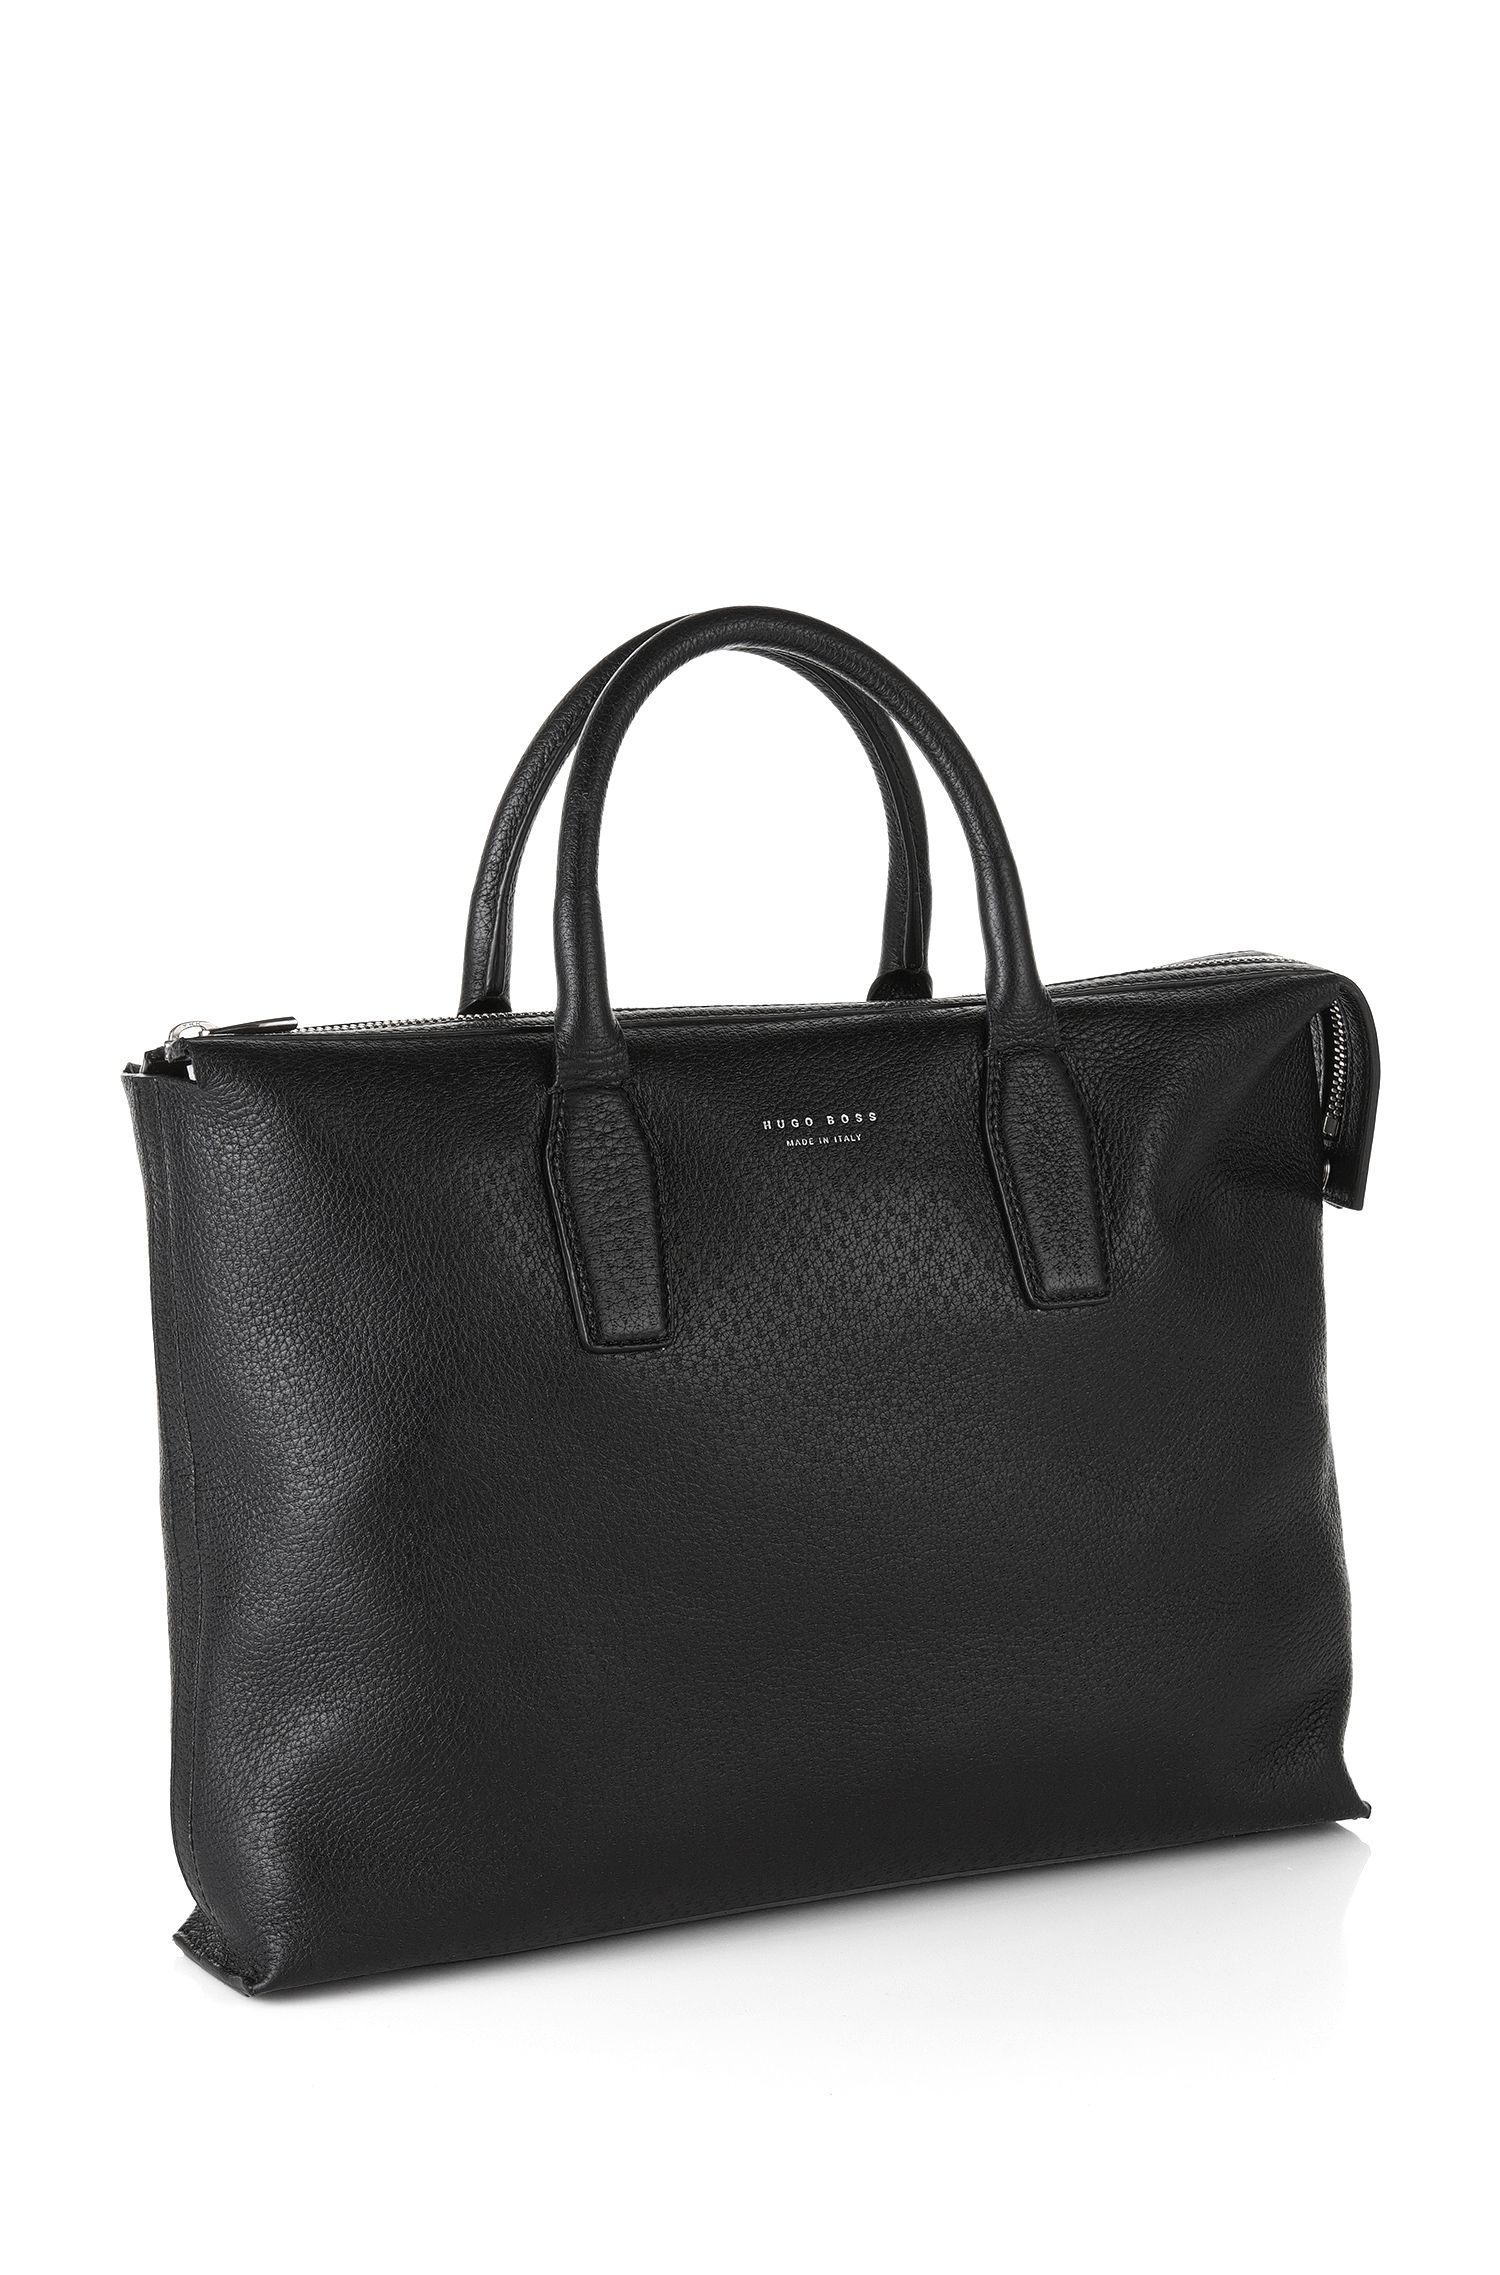 'S Pecary_S' | Leather Peccary Embossed Workbag